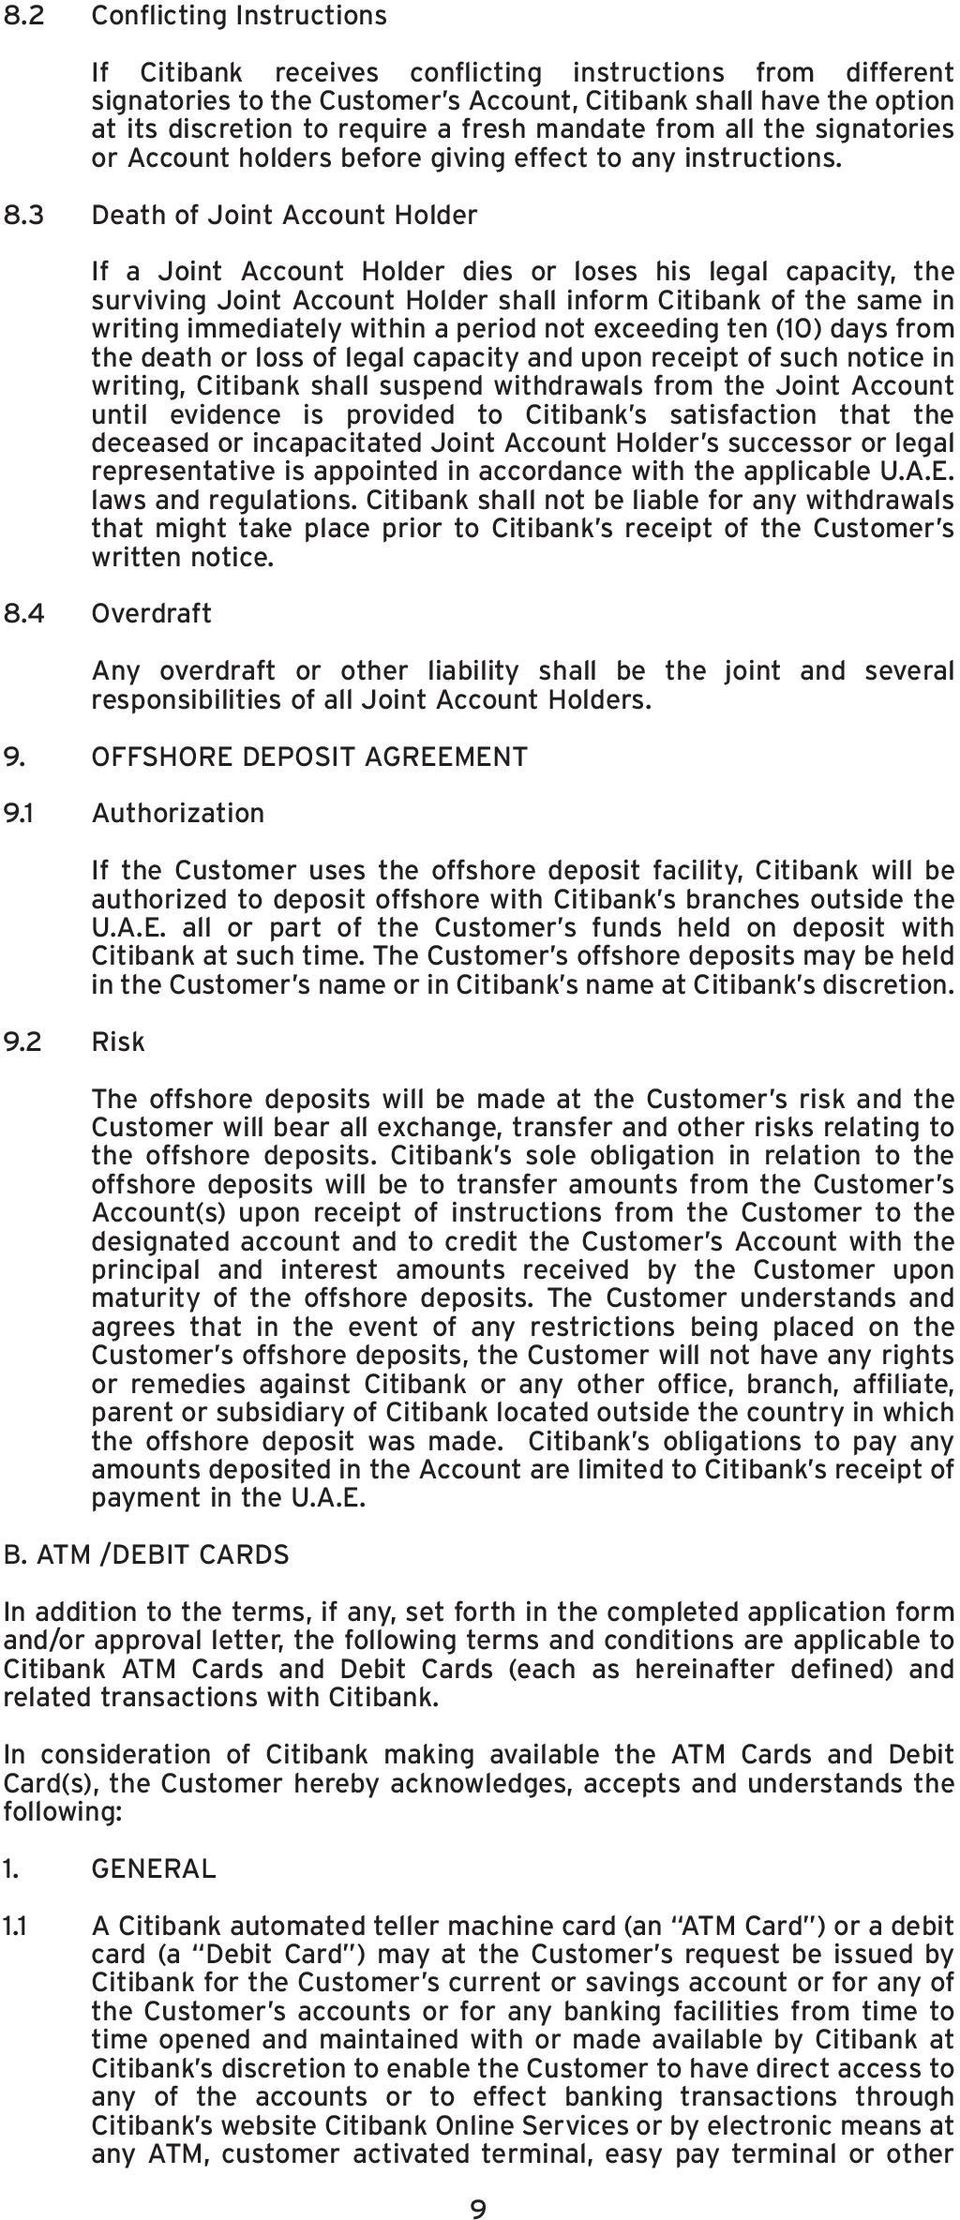 3 Death of Joint Account Holder If a Joint Account Holder dies or loses his legal capacity, the surviving Joint Account Holder shall inform Citibank of the same in writing immediately within a period